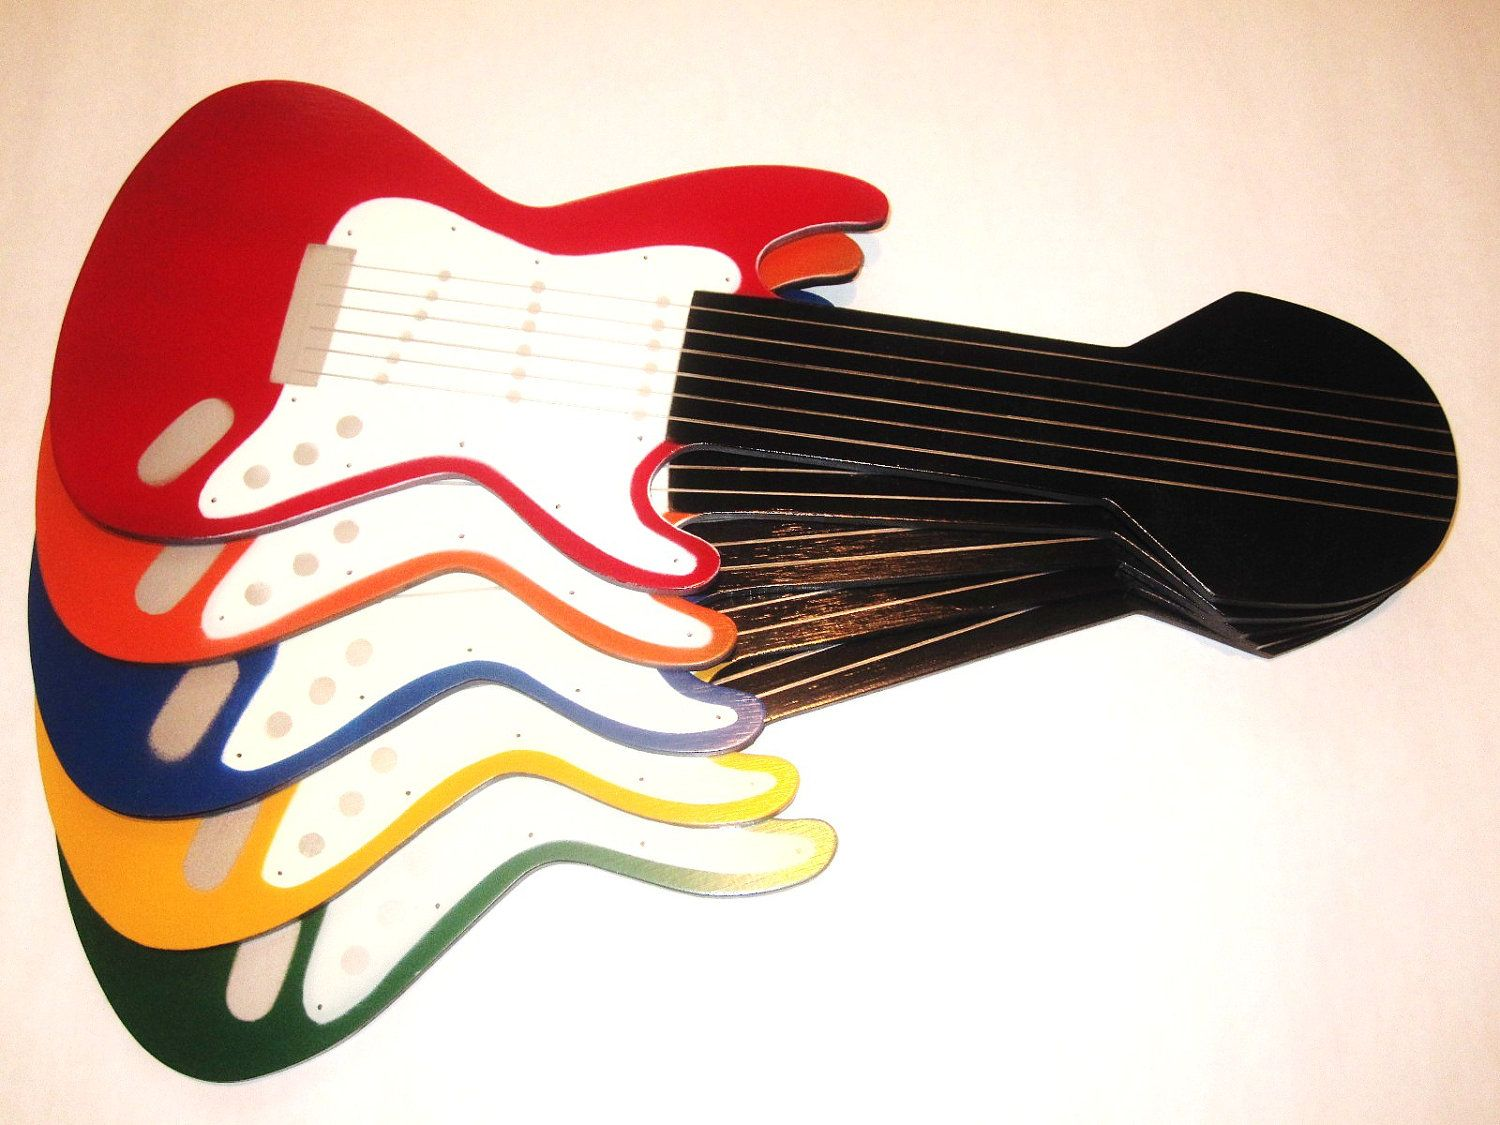 Multi colored electric guitar shaped ceiling fan blades 4999 via multi colored electric guitar shaped ceiling fan blades 4999 via etsy christmas aloadofball Choice Image